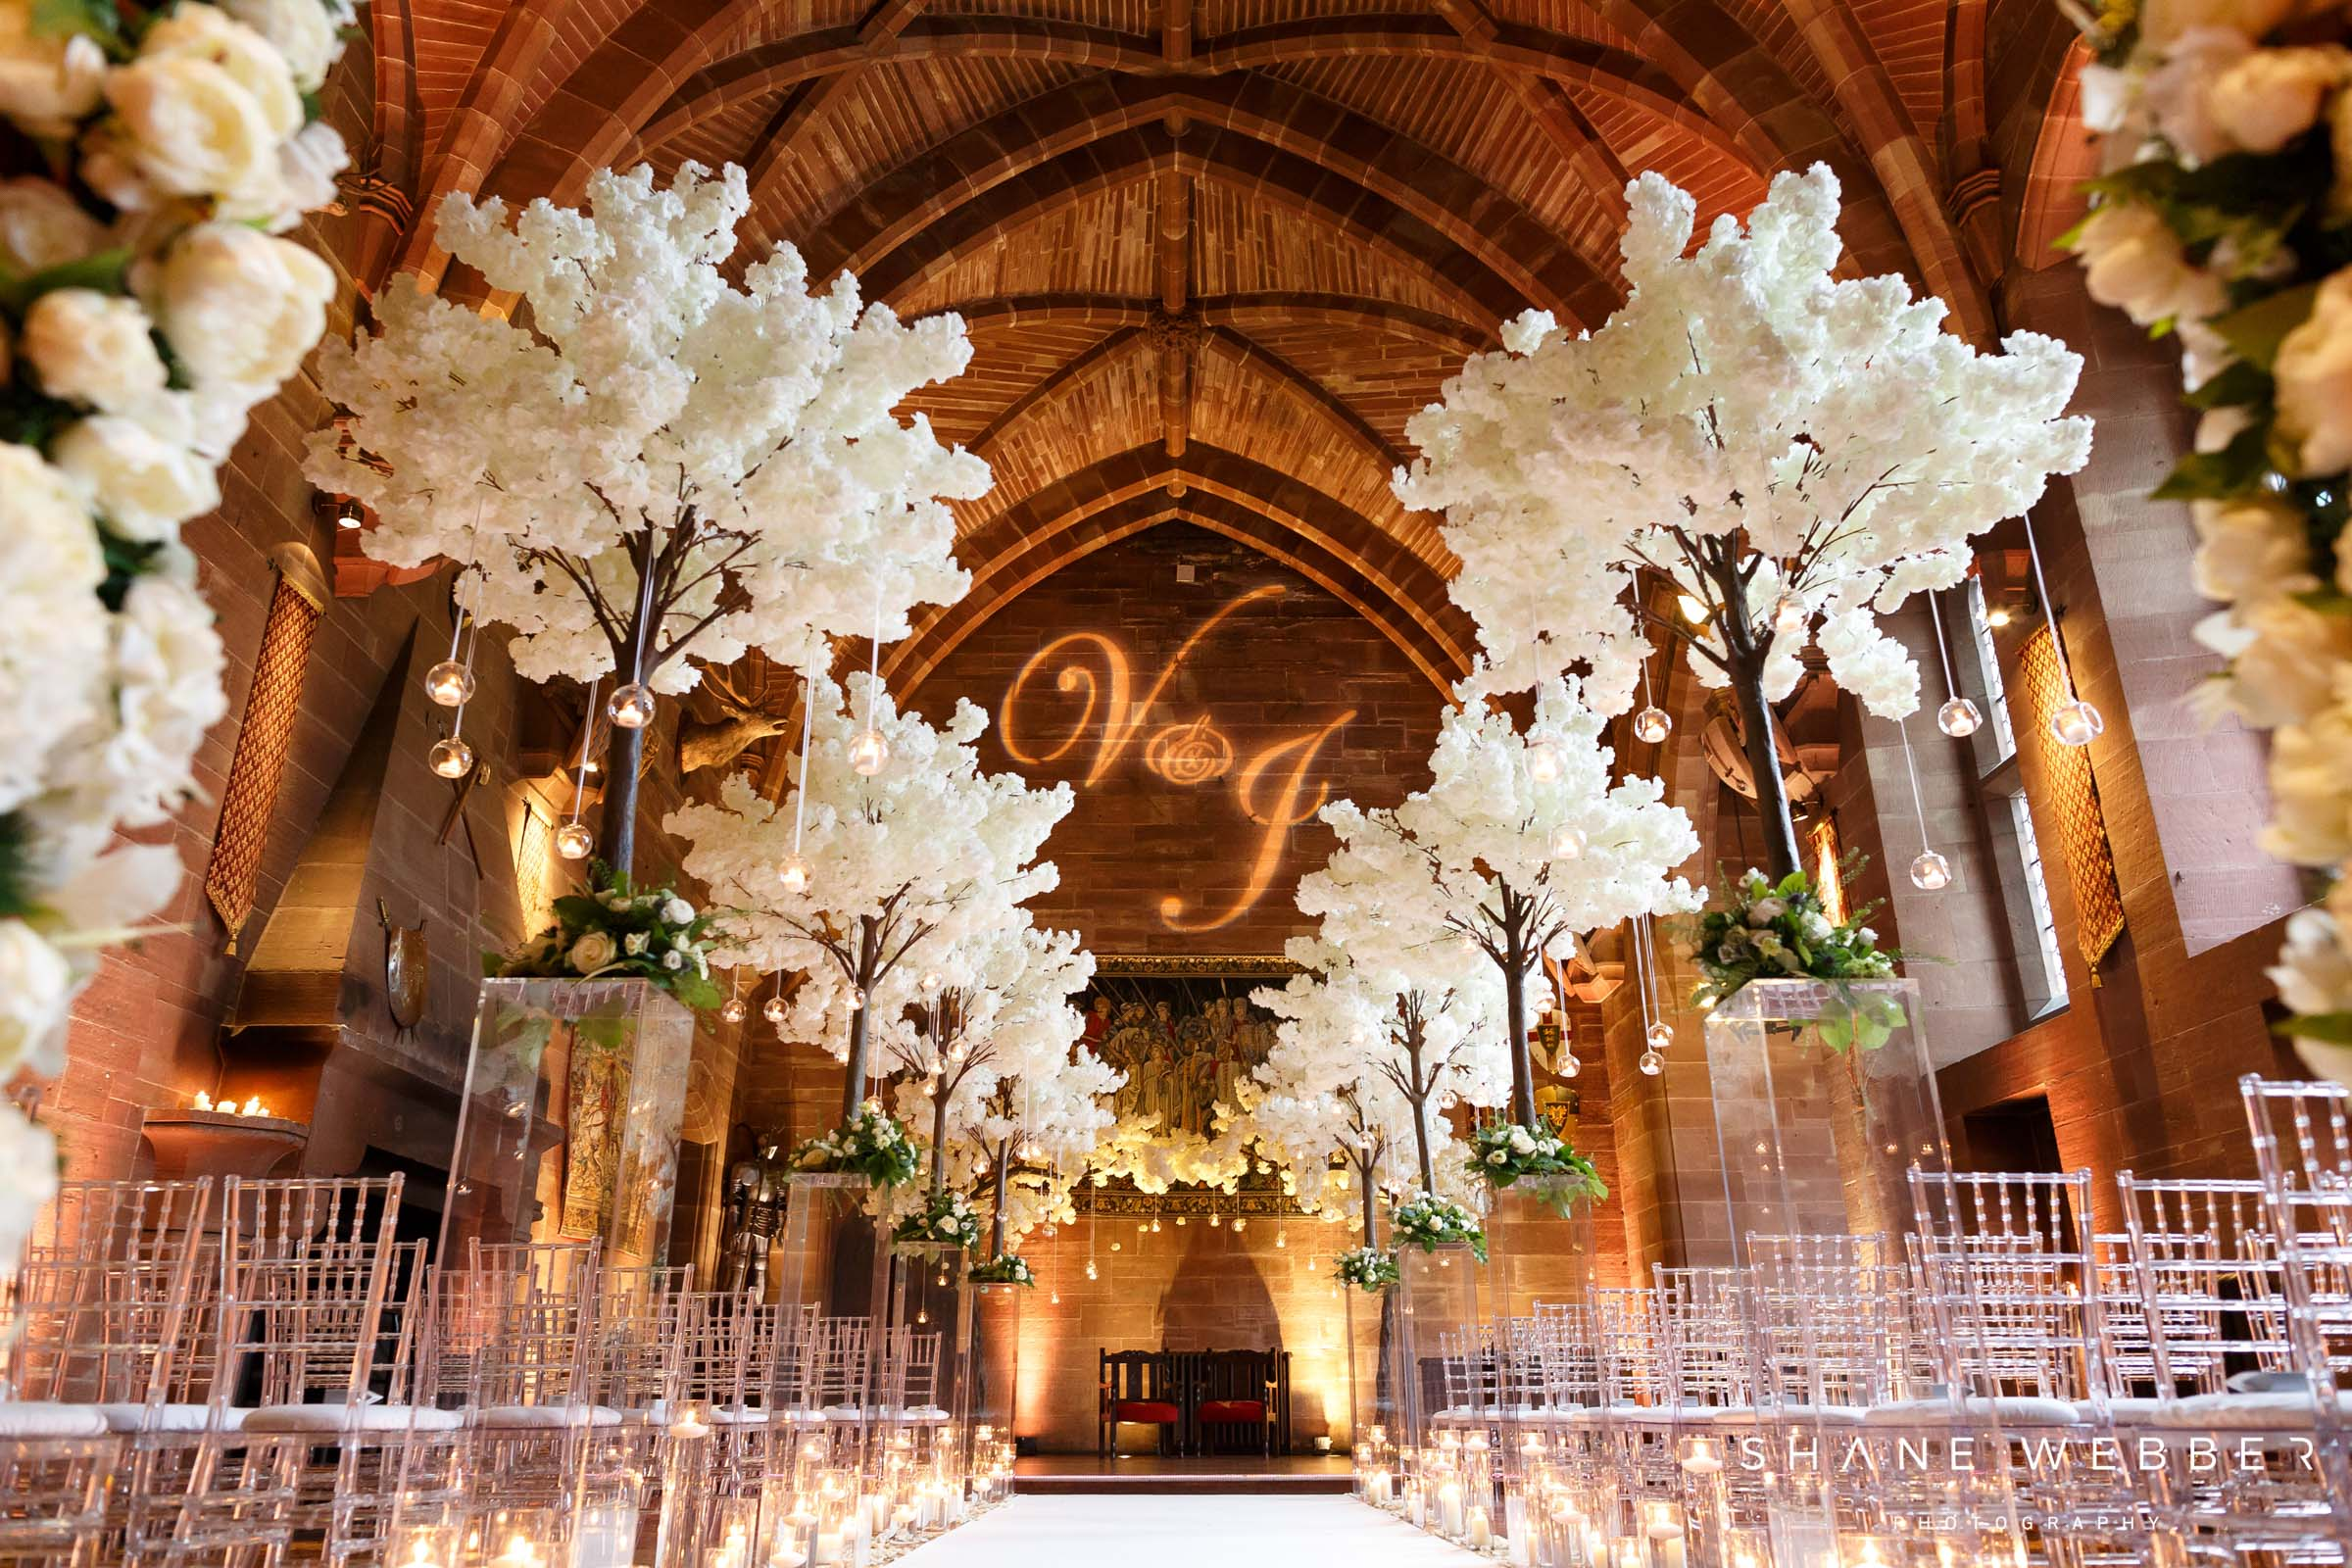 Peckforton castle ceremony room